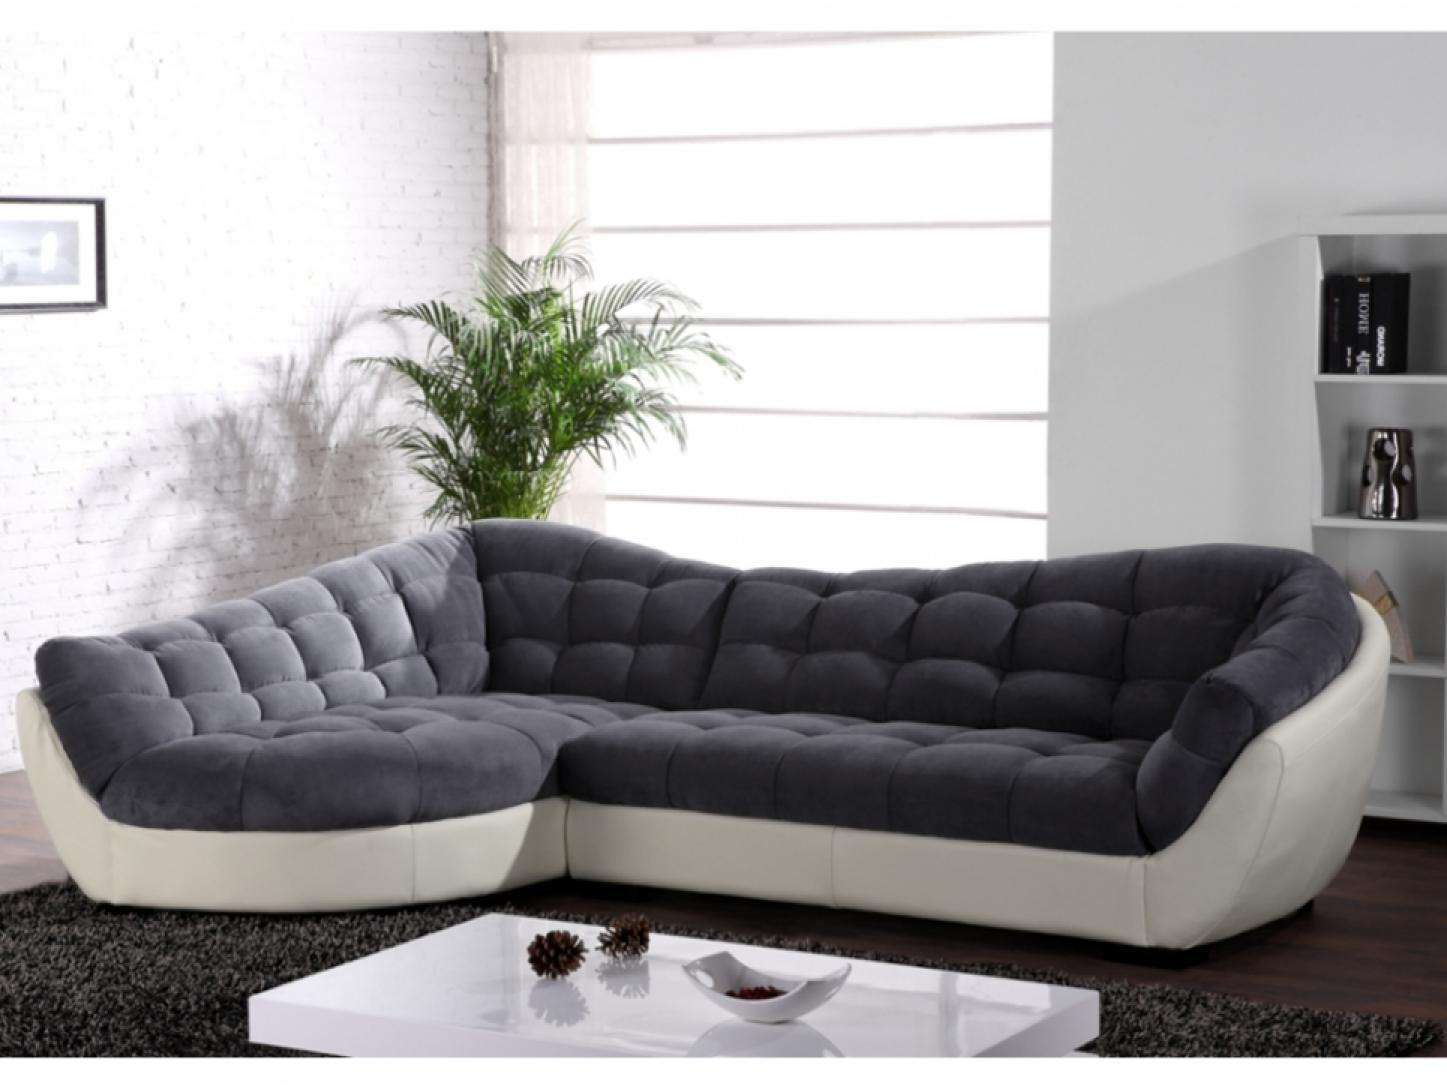 Canap arrondi convertible royal sofa - Canape d angle de qualite ...